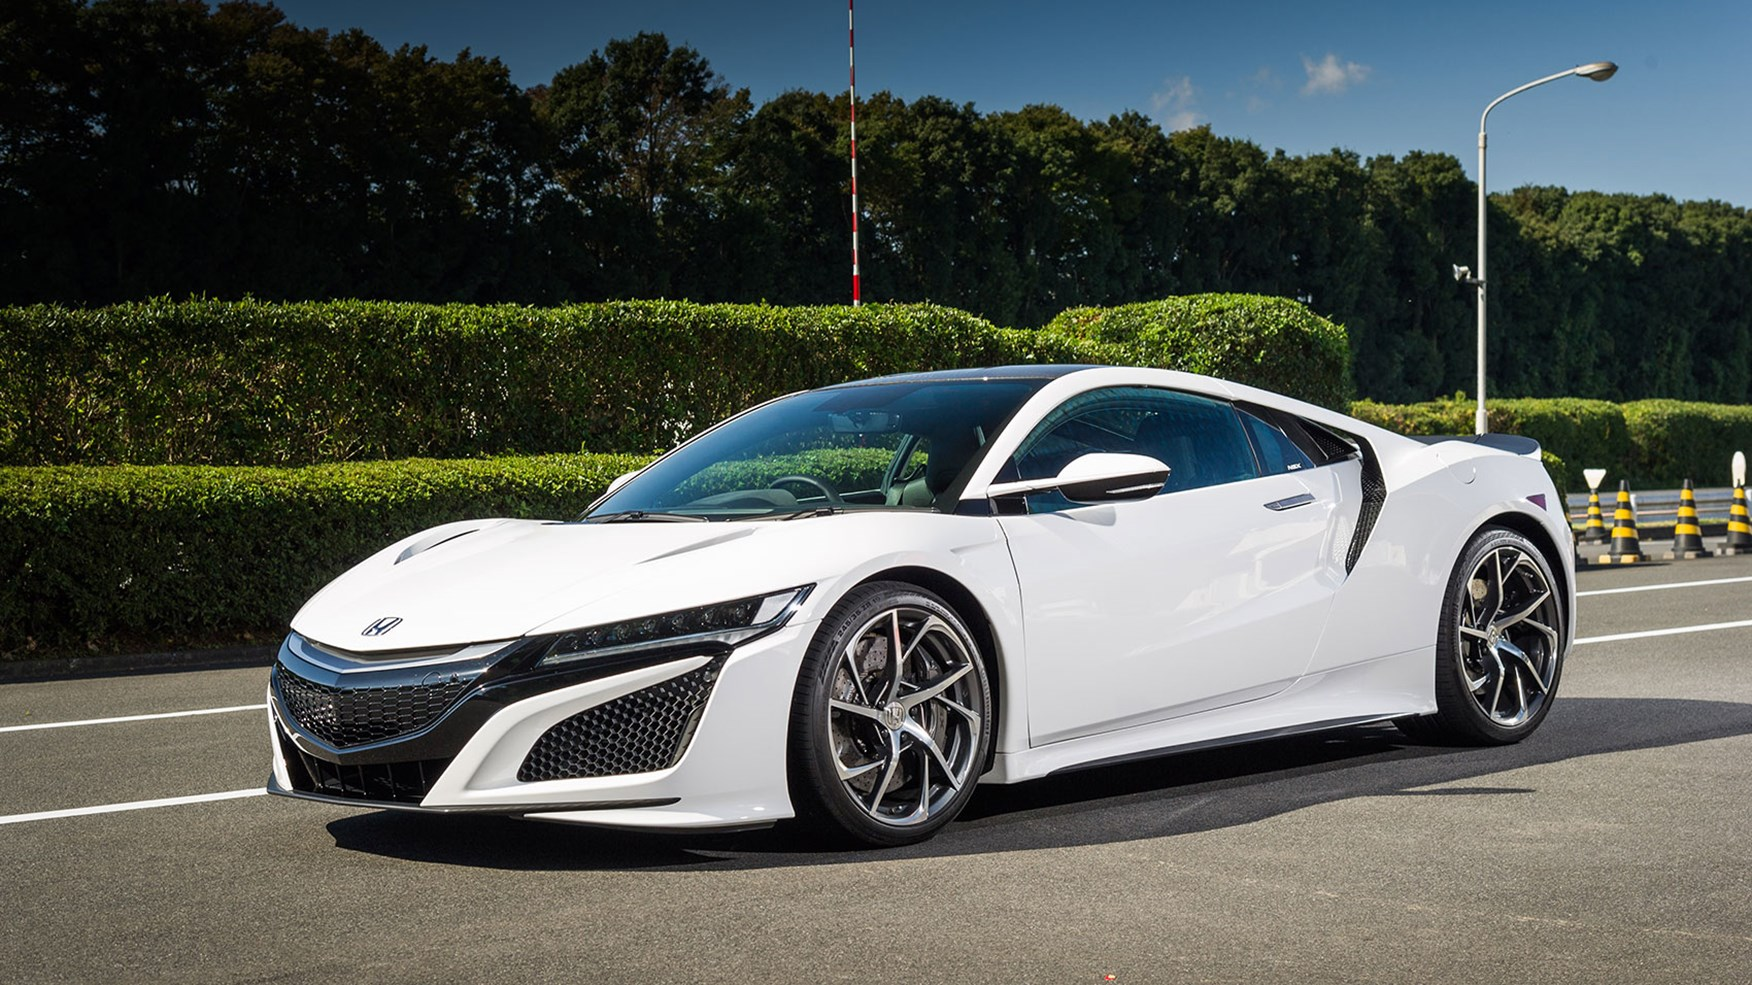 Honda Nsx 2016 Review By Car Magazine